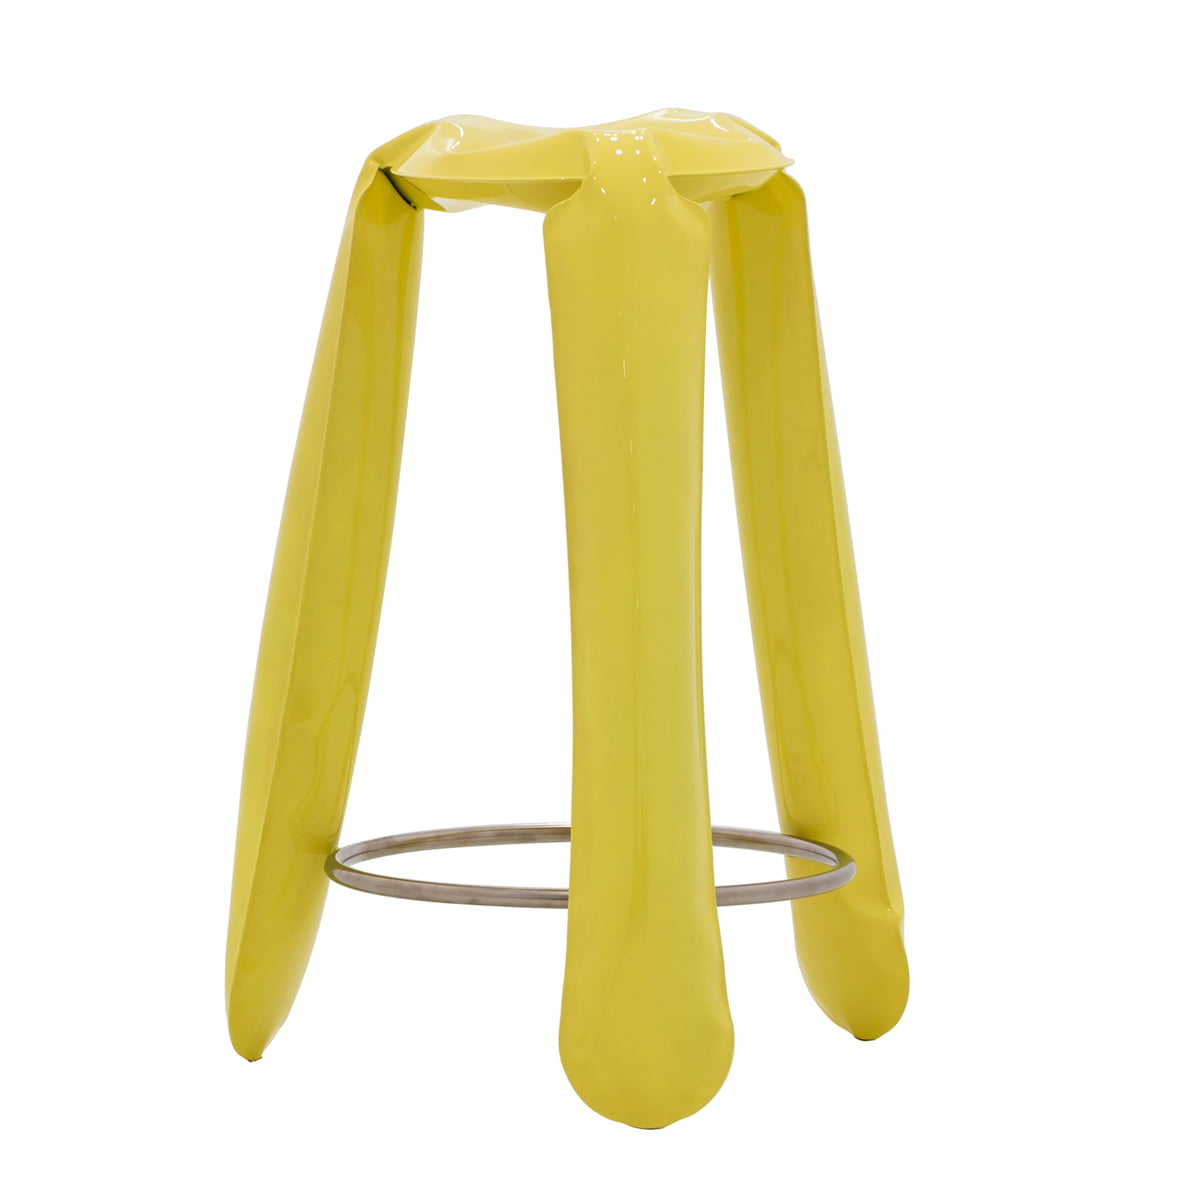 Buy now the plopp bar stool by zieta at the shop for Barhocker gelb